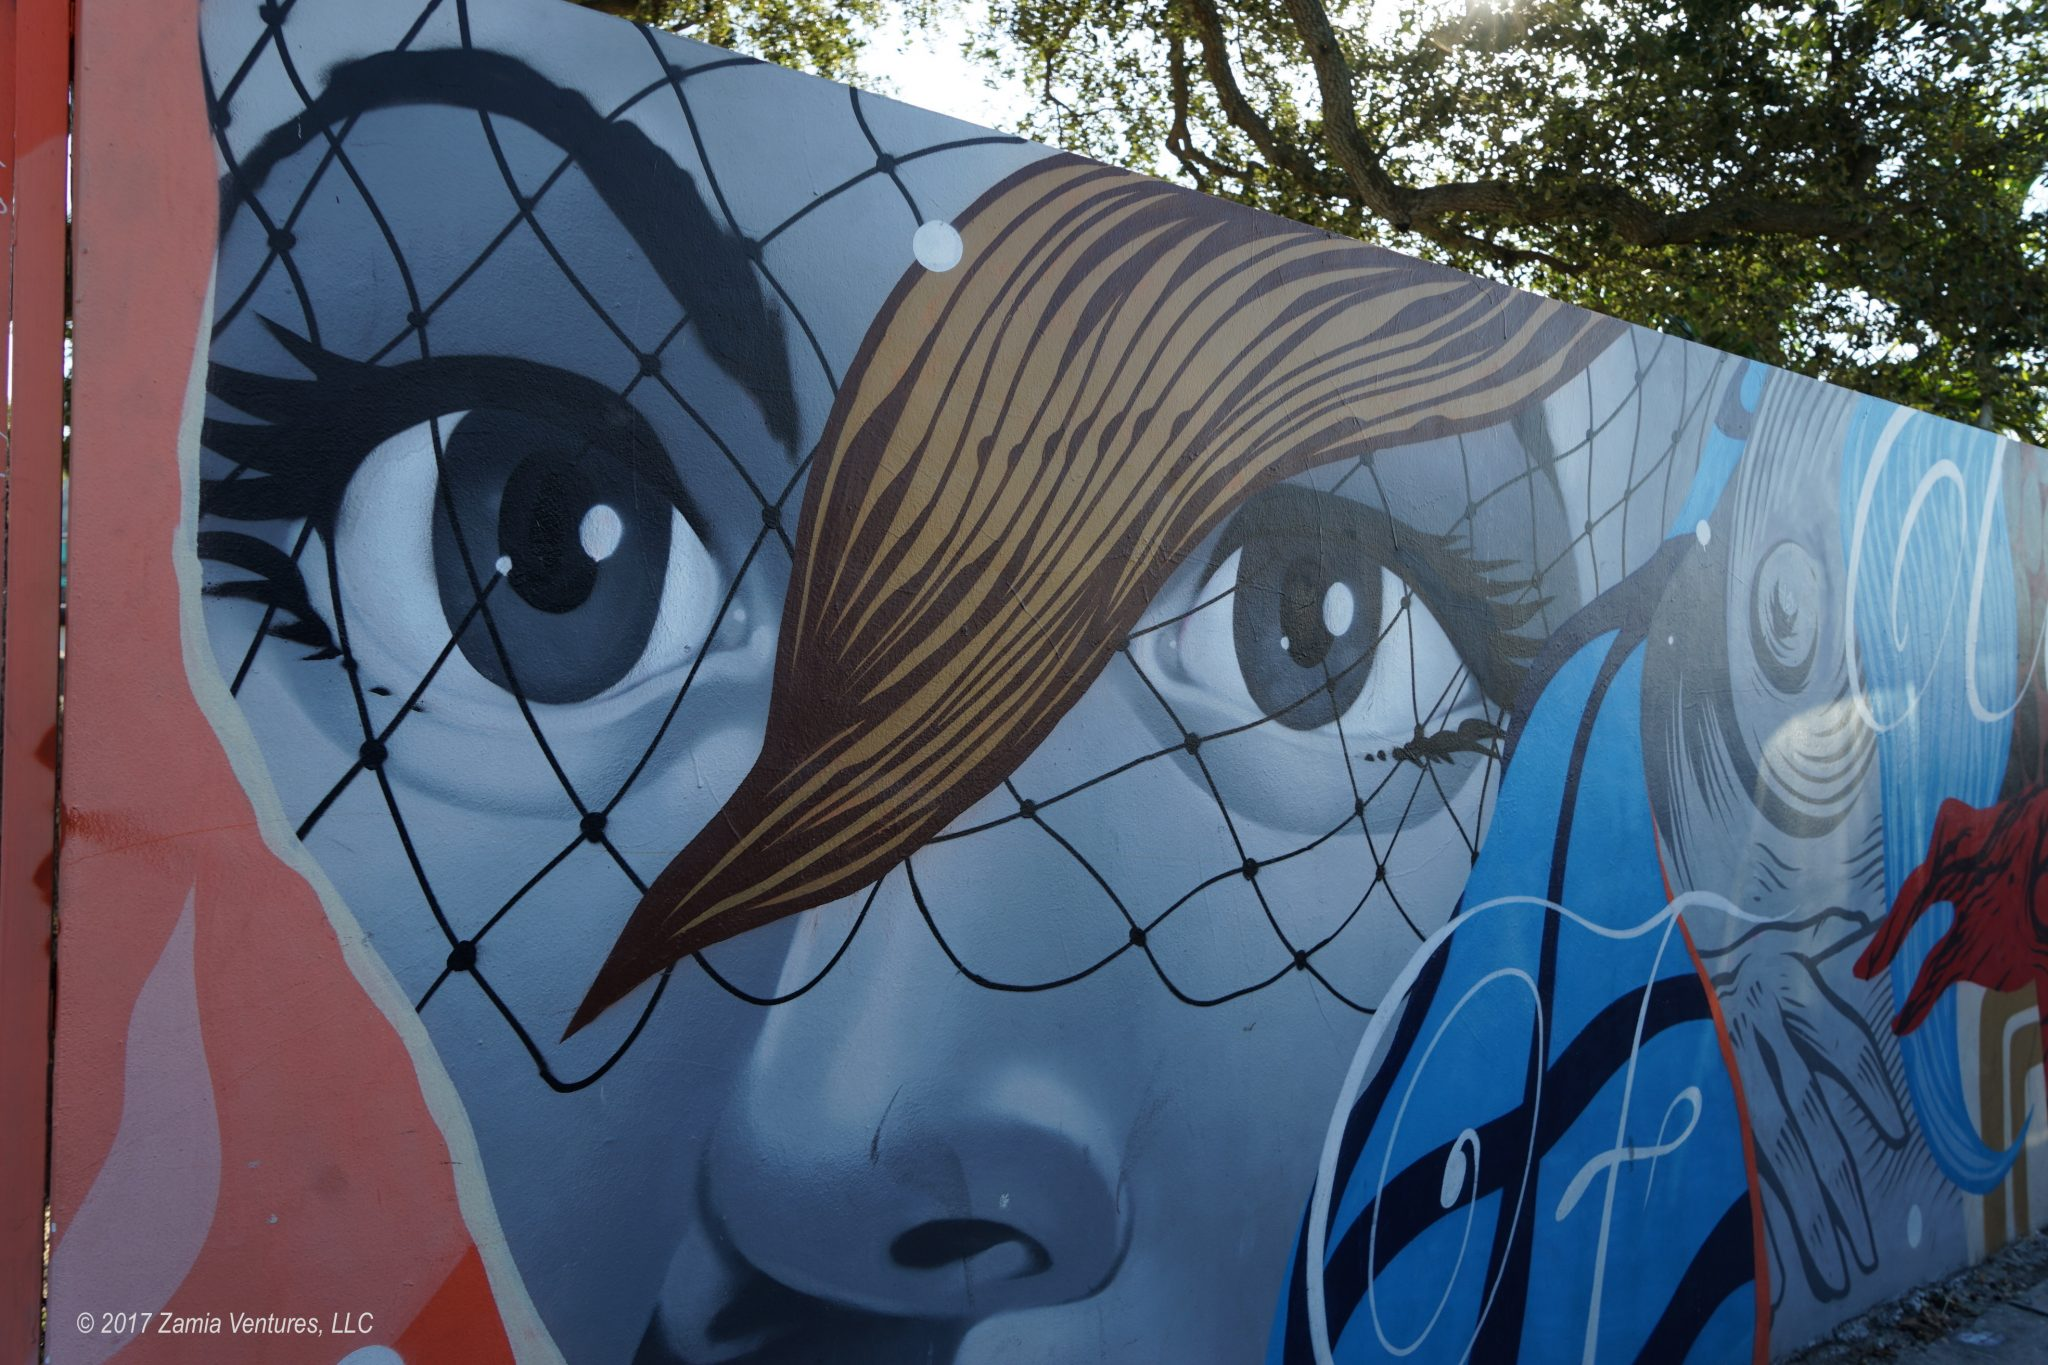 Learning About Street Art in Wynwood